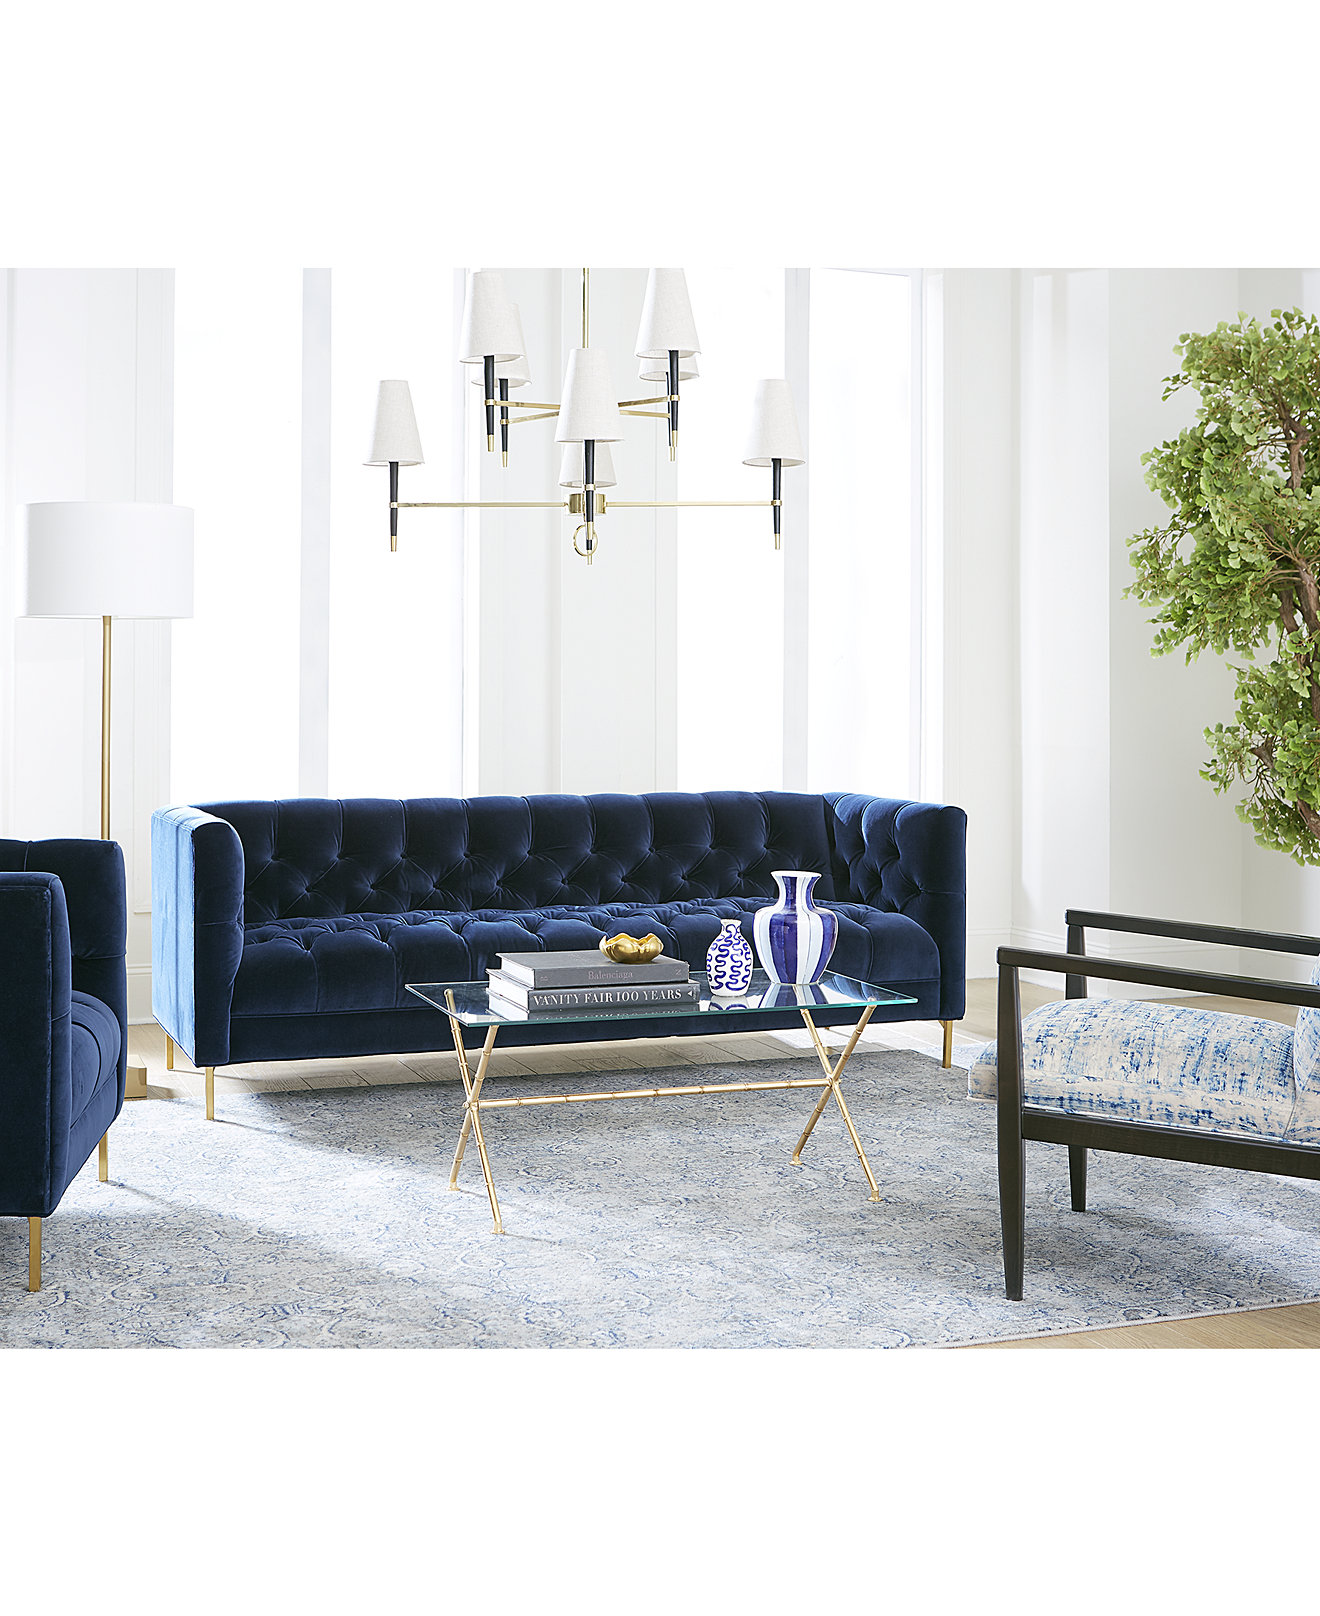 Mccreary Modern Furniture Shop For And Buy Mccreary Modern. mccreary modern sofa  furniture  mesmerizing mccreary modern